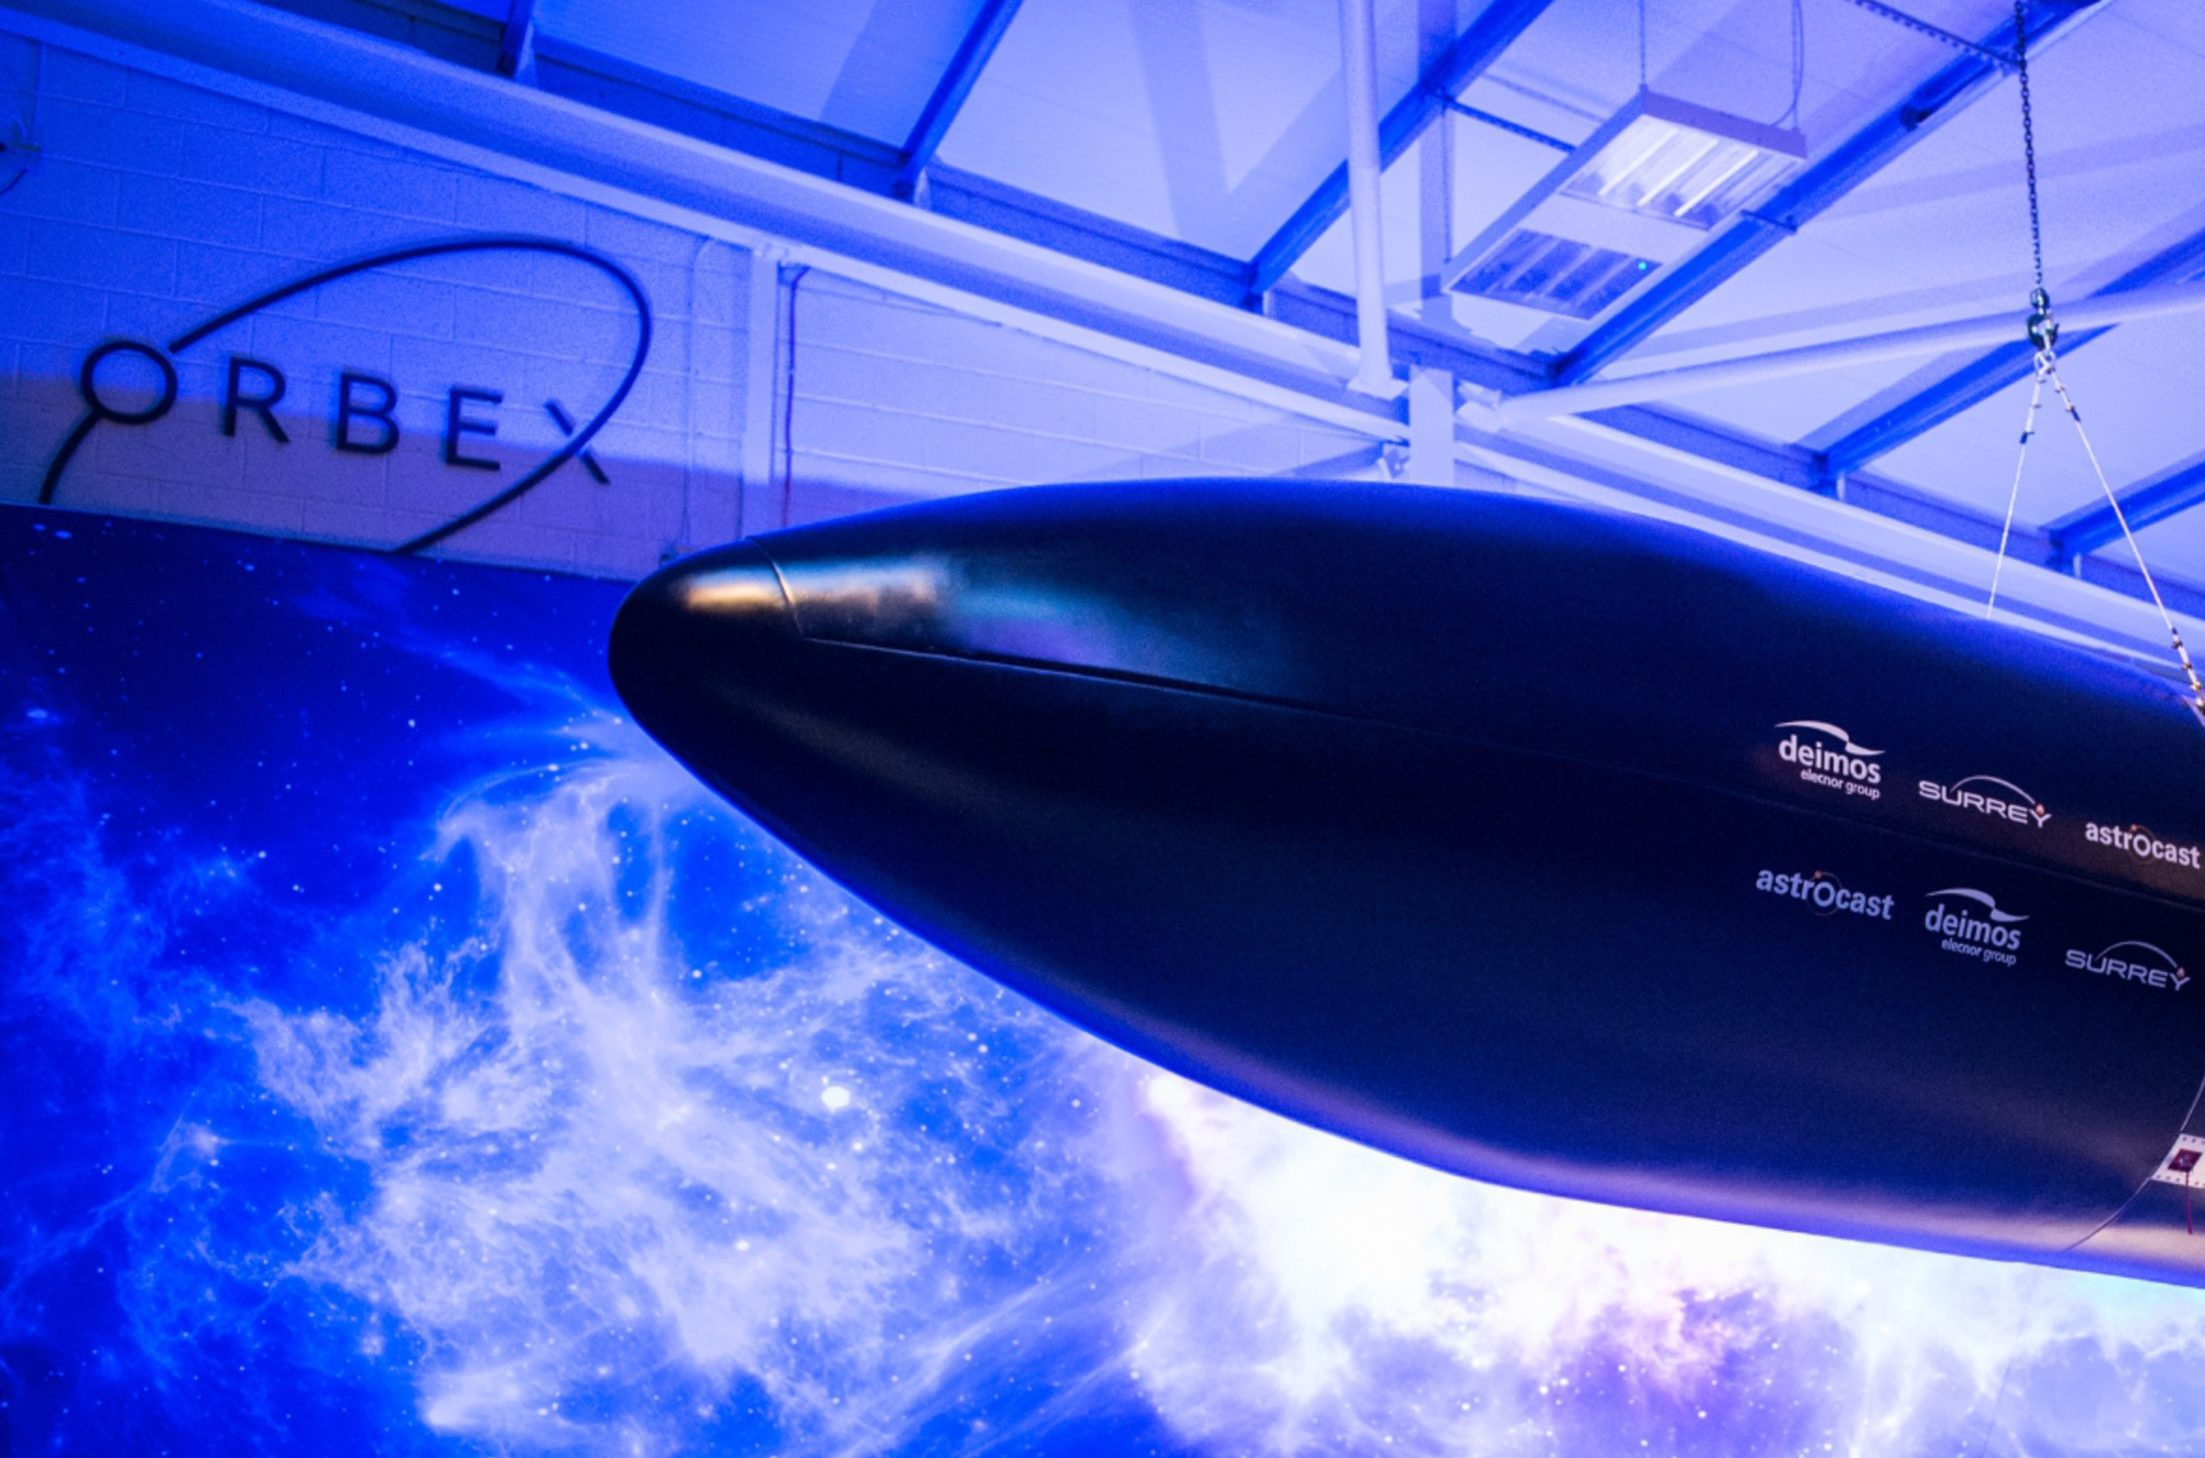 Orbex in Forres, Moray unveil Prime Rocket at New Facility.  Picture by Jason Hedges